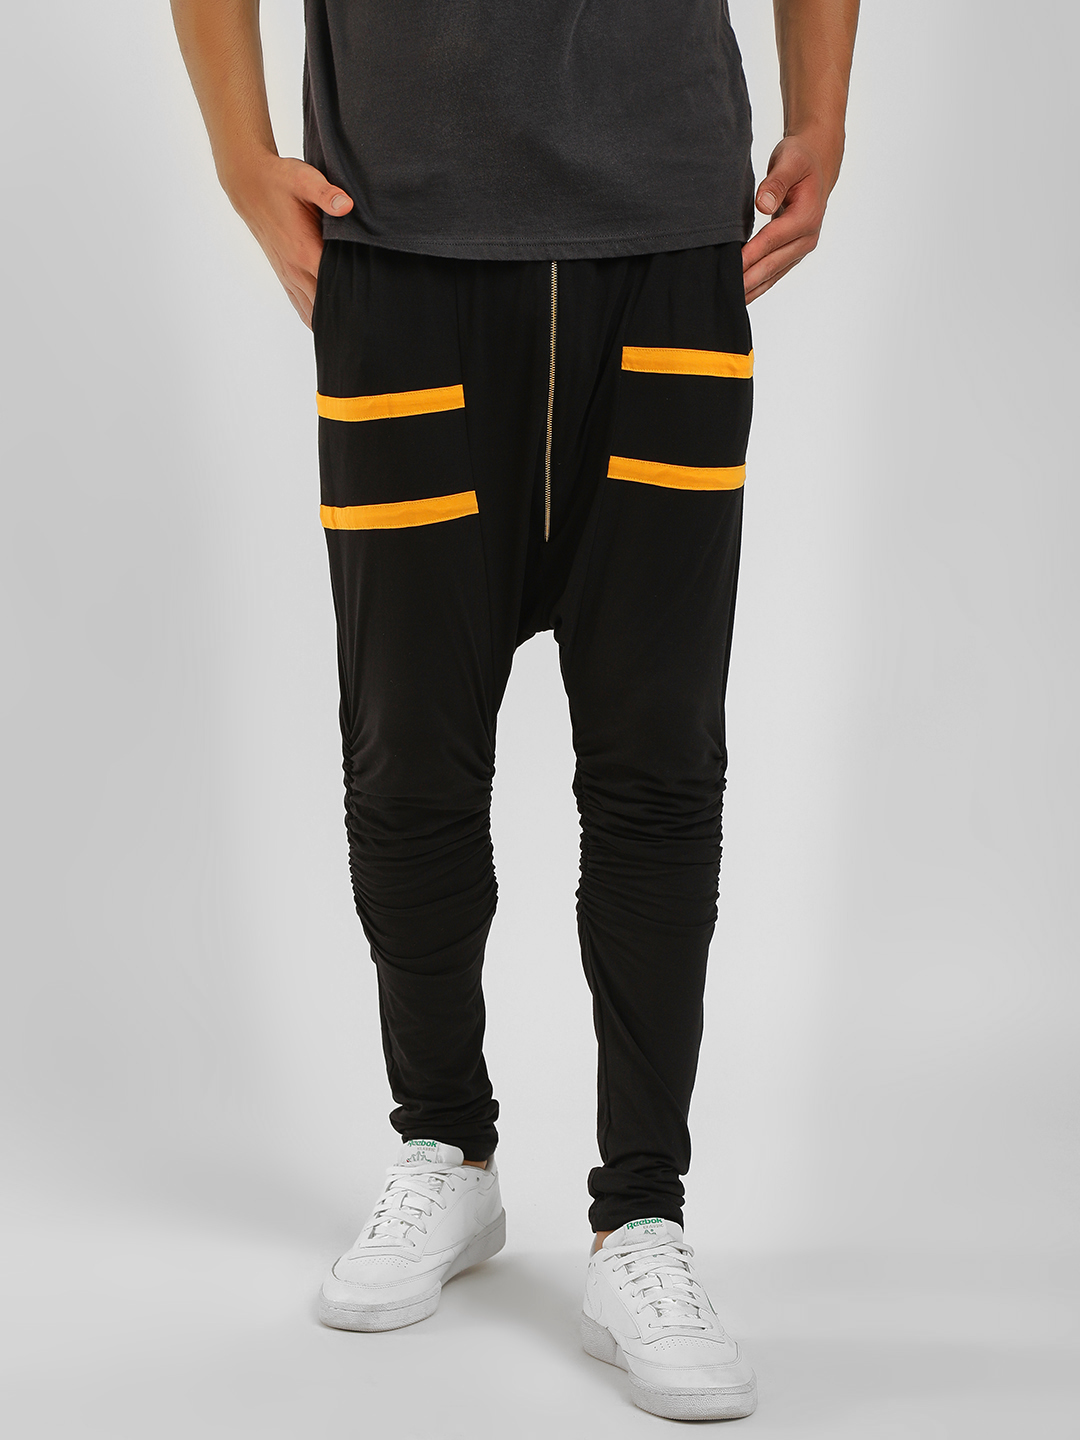 Fighting Fame Black Street X Drop Crotch Joggers 1